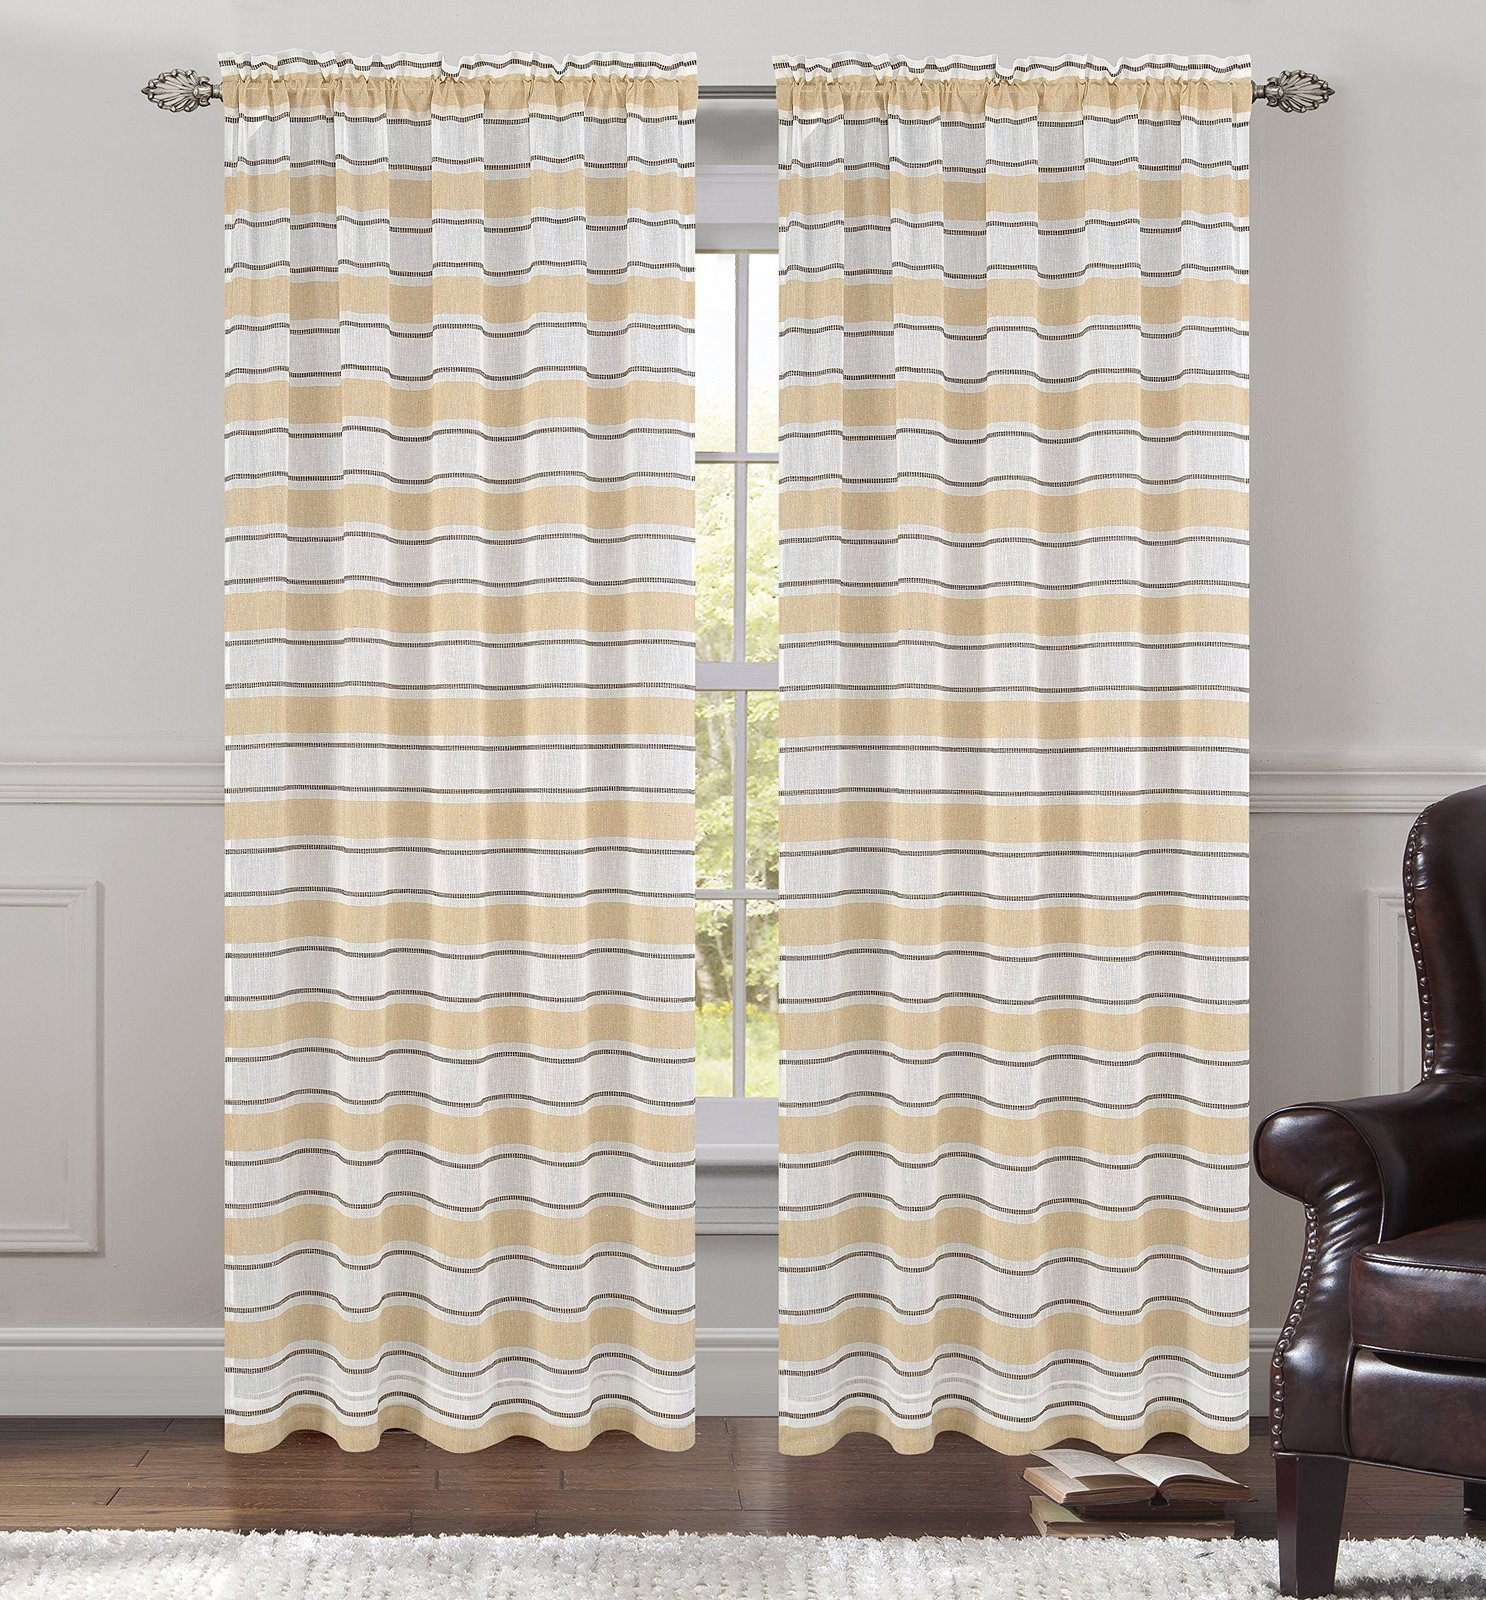 Urbanest 54-inch by 84-inch Set of 2 Faux Linen Sheer Deneuve Drapery Curtain Pa image 2